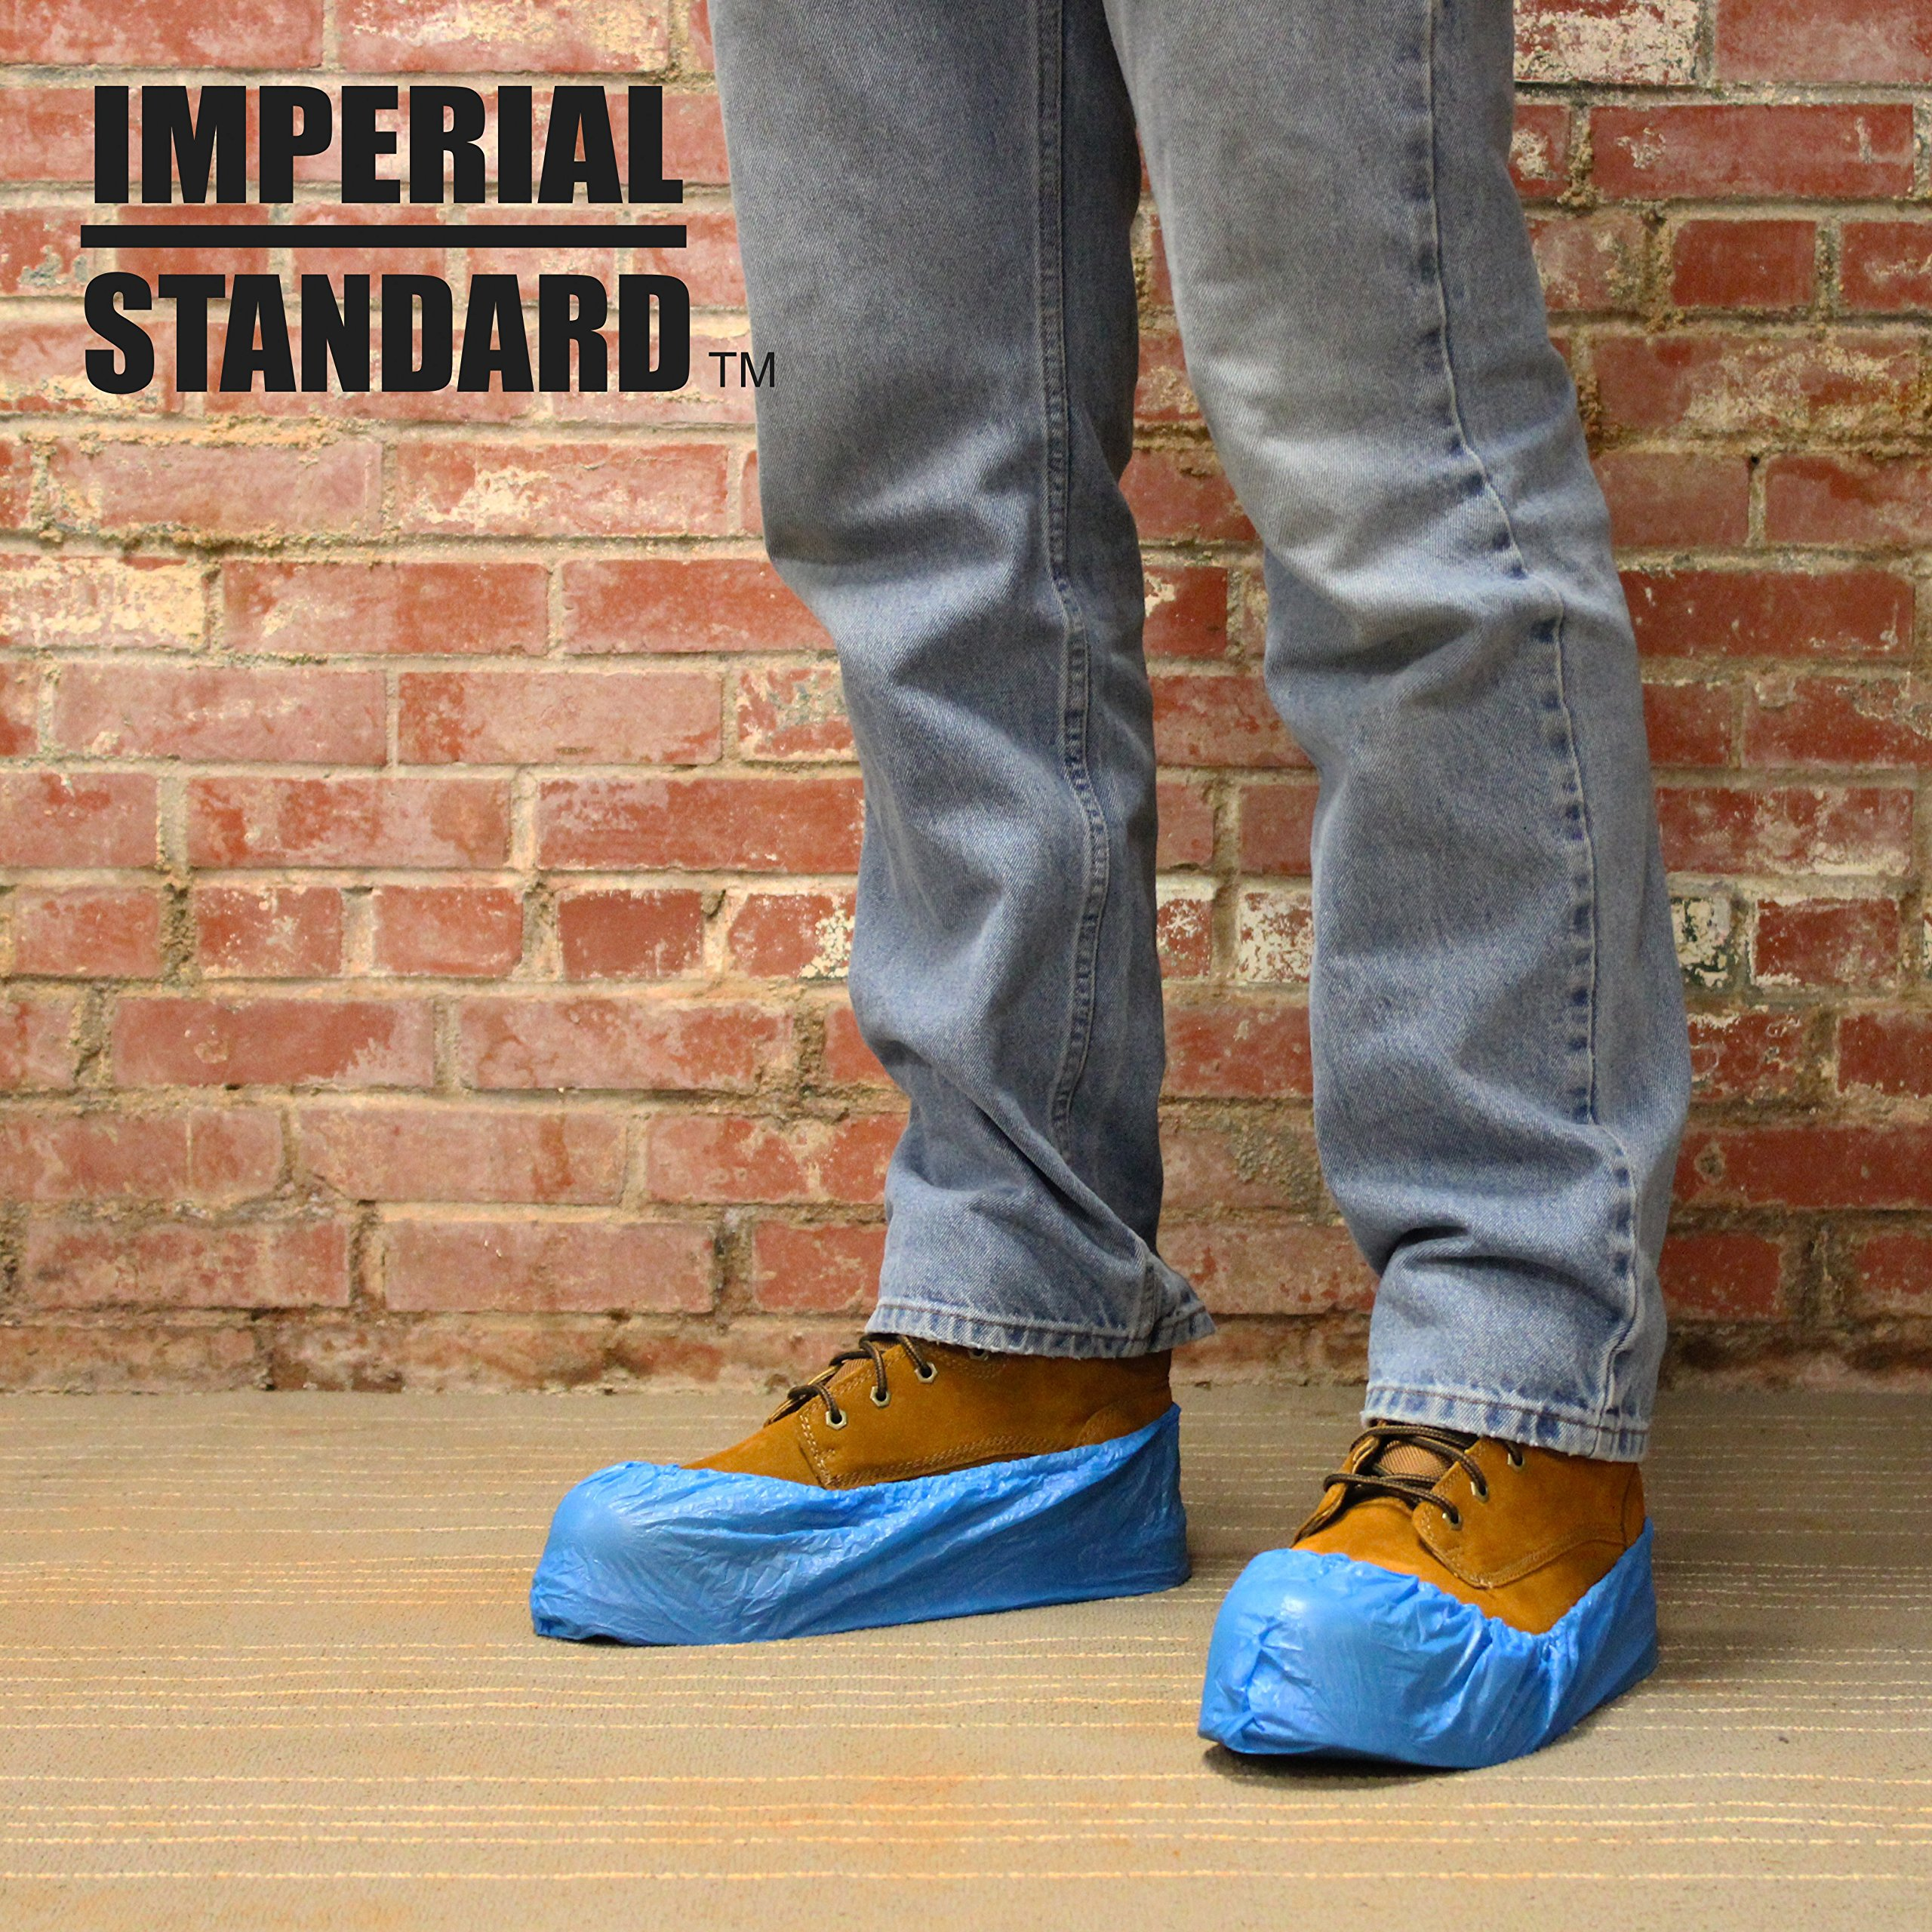 Waterproof Boot Covers for Professionals - XL Disposable Shoe Covers - Non-Slip Waterproof Shoe Protectors - Fits up to Size 13 Work Boot and Size 14 Shoe - (100 pack) by Imperial Standard (Image #4)